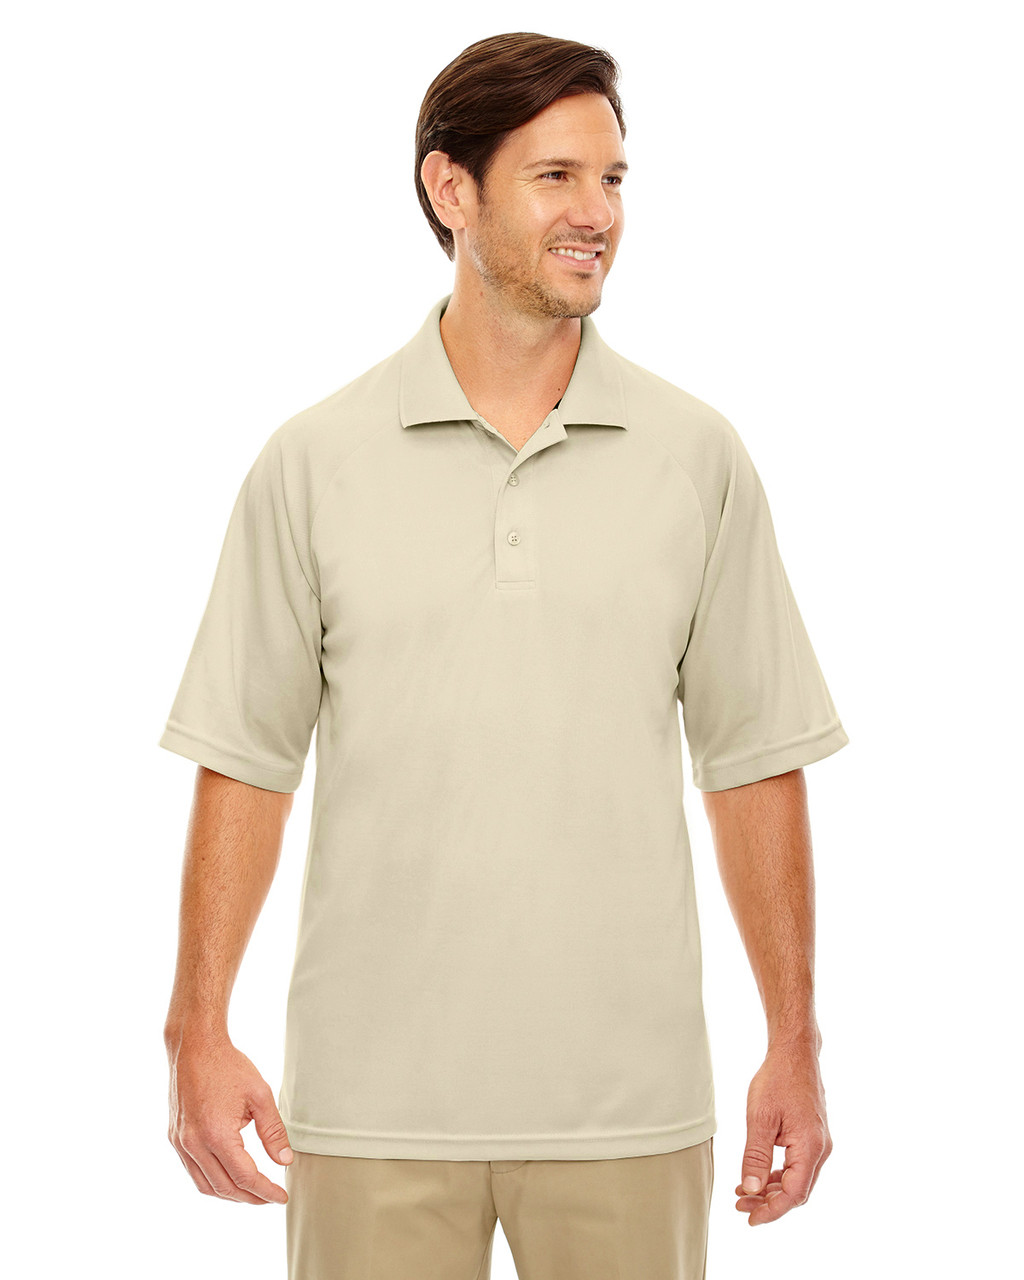 Sand - 85080 Extreme Men's Eperformance™ Pique Polo Shirt